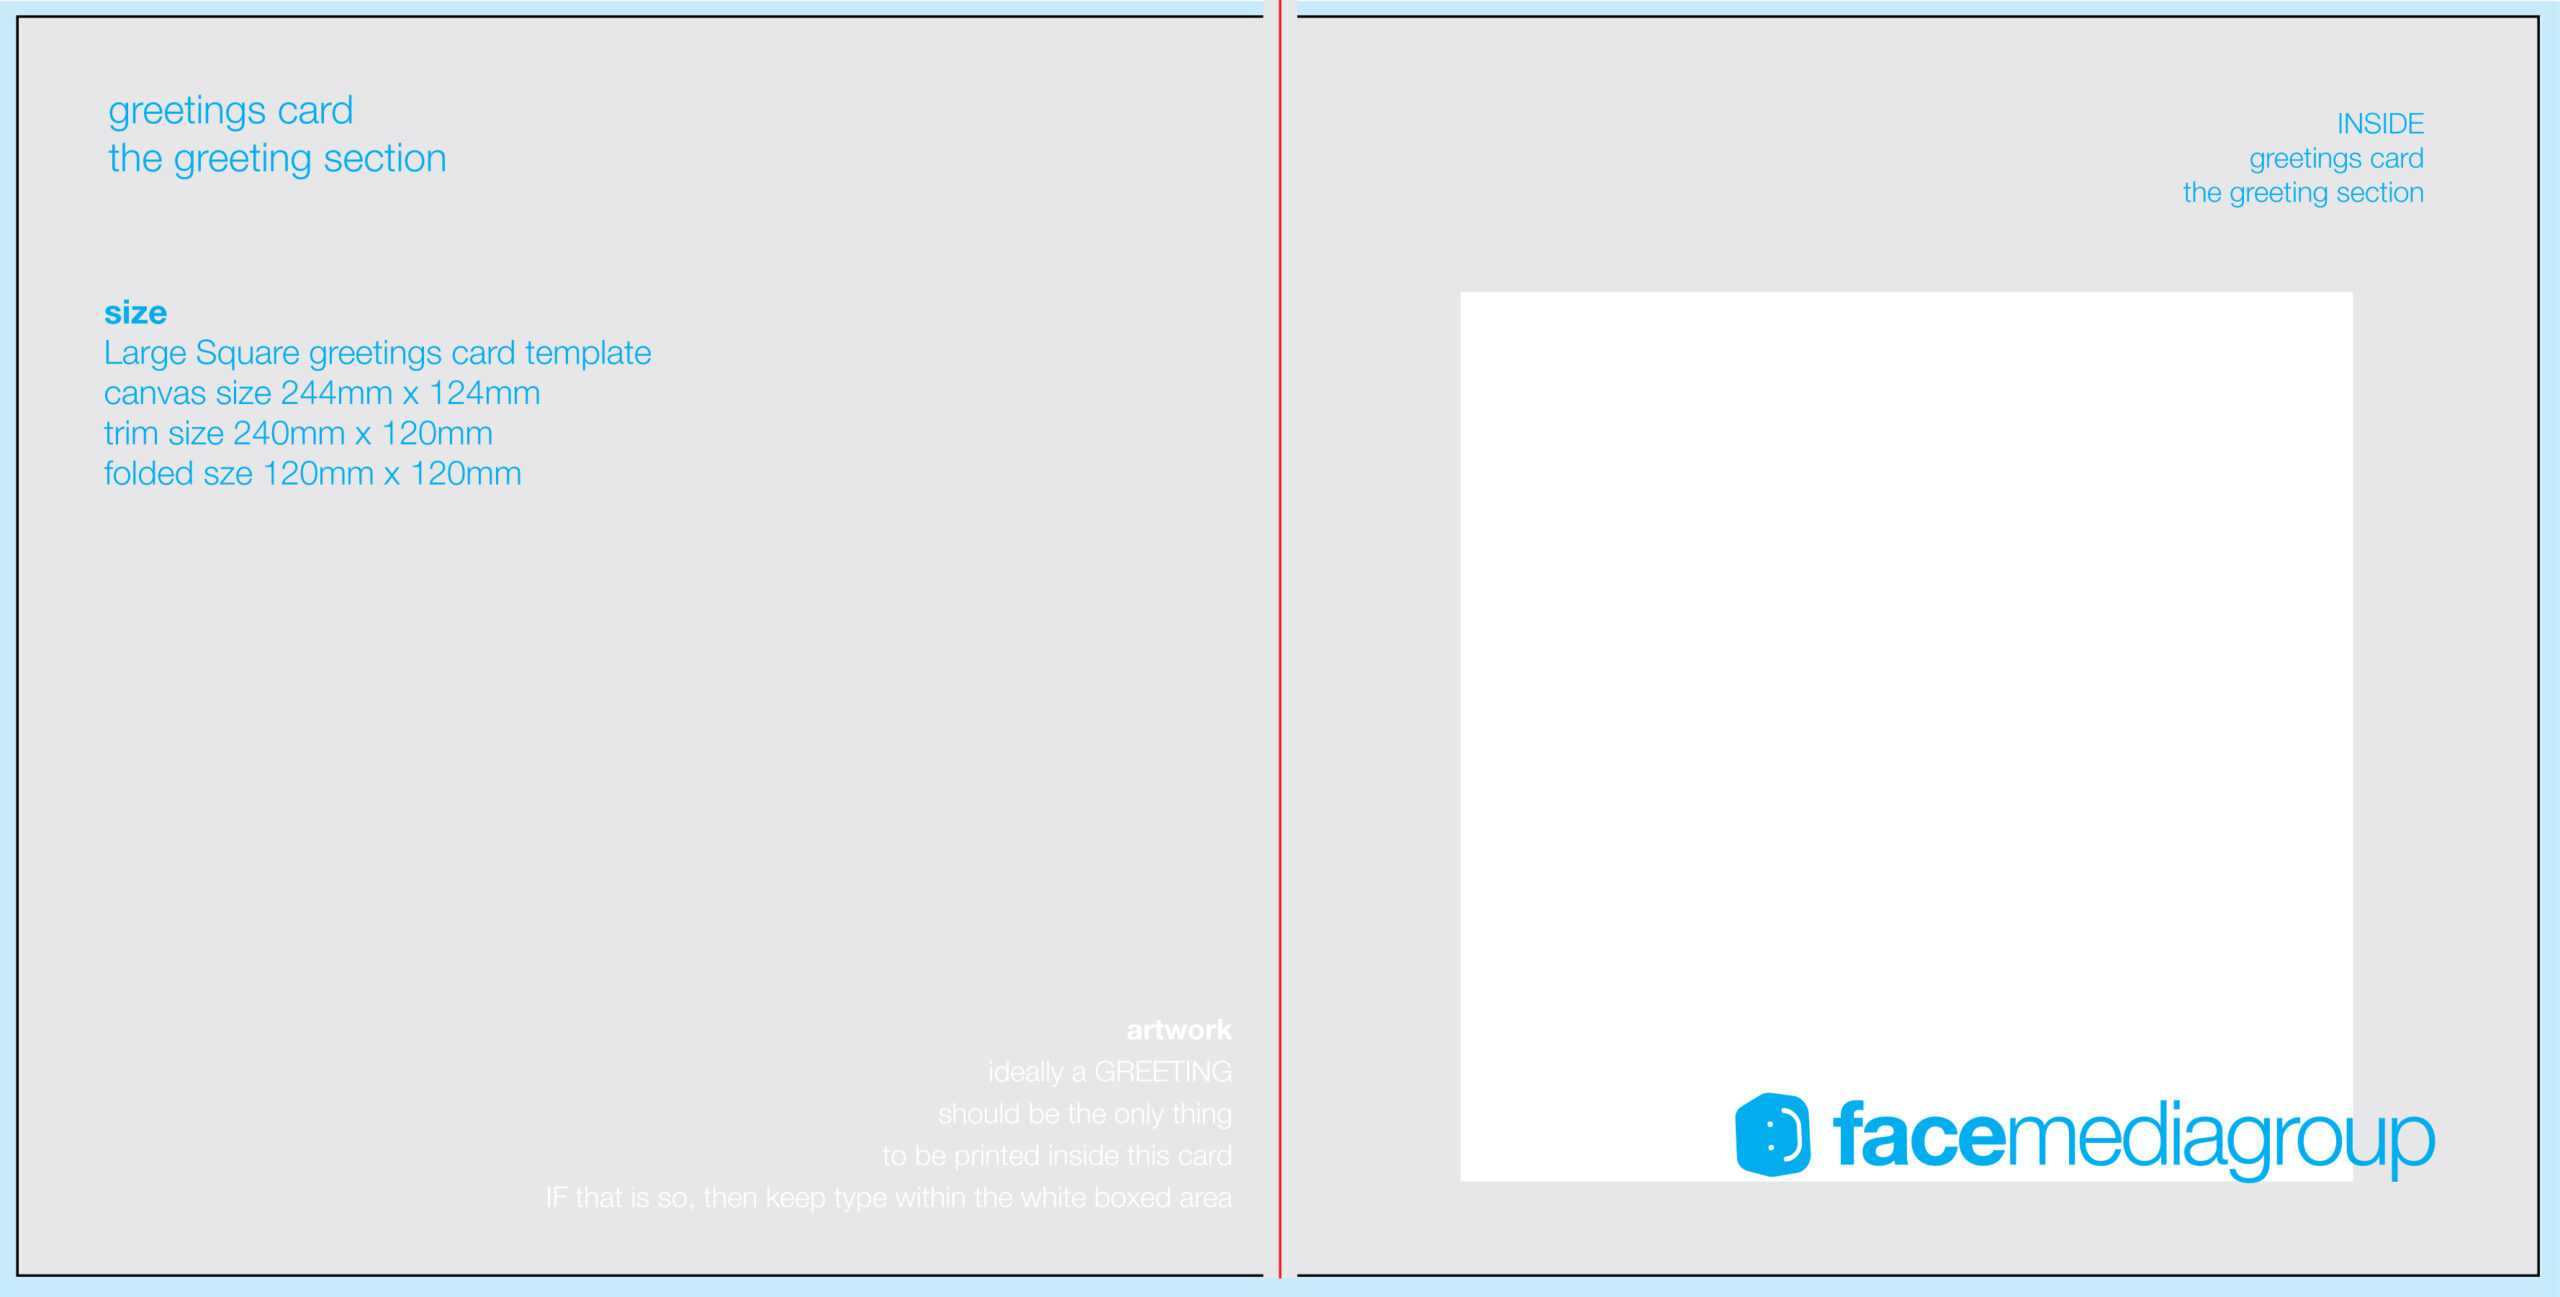 002 Quarter Fold Card Template Photoshop Indesign Greeting intended for Birthday Card Template Indesign